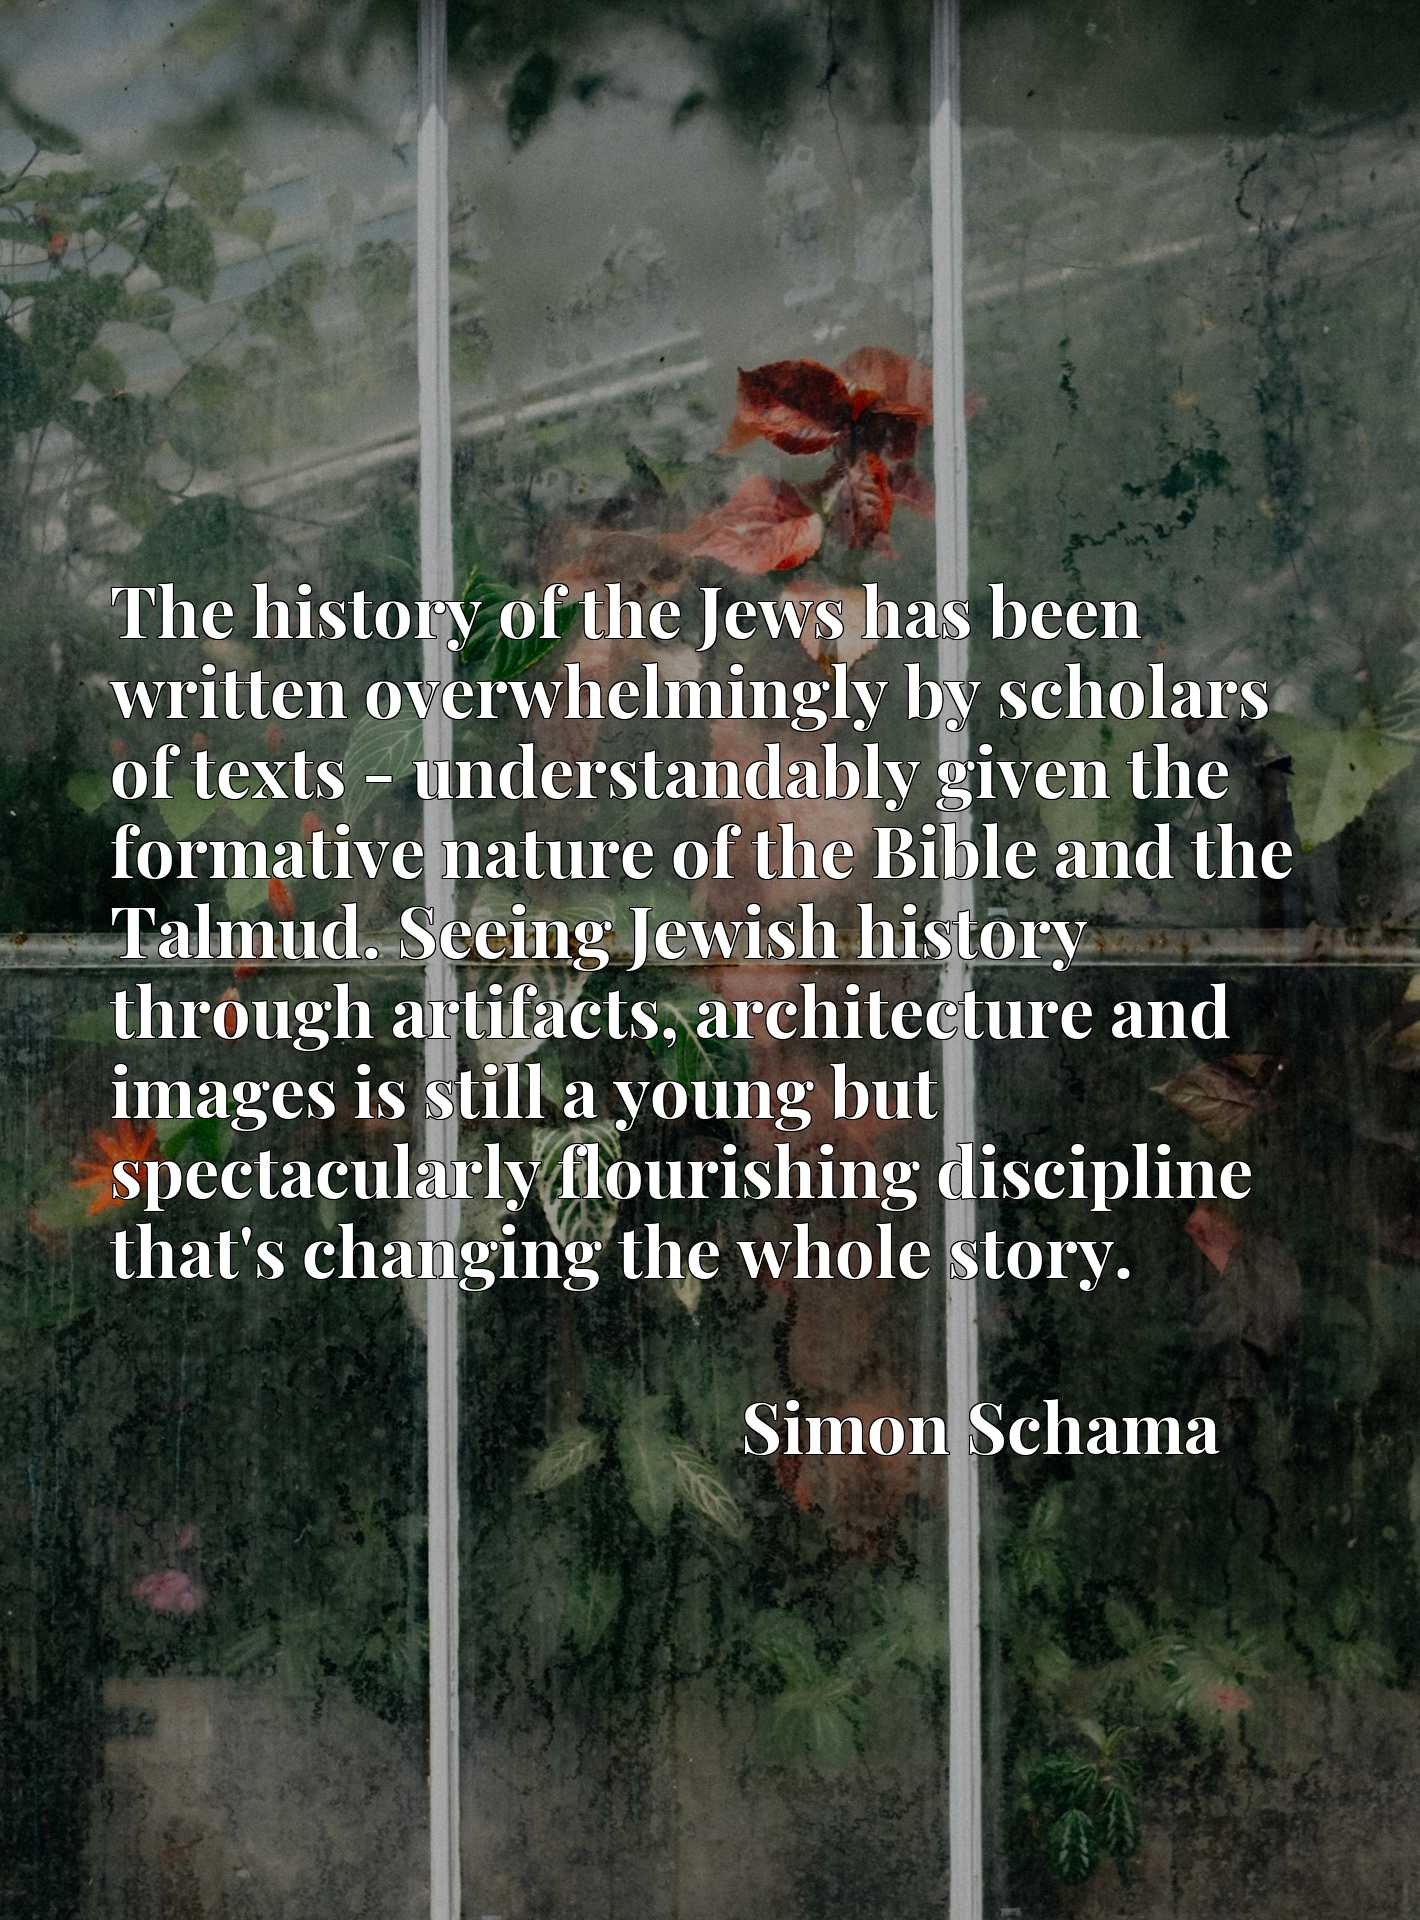 The history of the Jews has been written overwhelmingly by scholars of texts - understandably given the formative nature of the Bible and the Talmud. Seeing Jewish history through artifacts, architecture and images is still a young but spectacularly flourishing discipline that's changing the whole story.